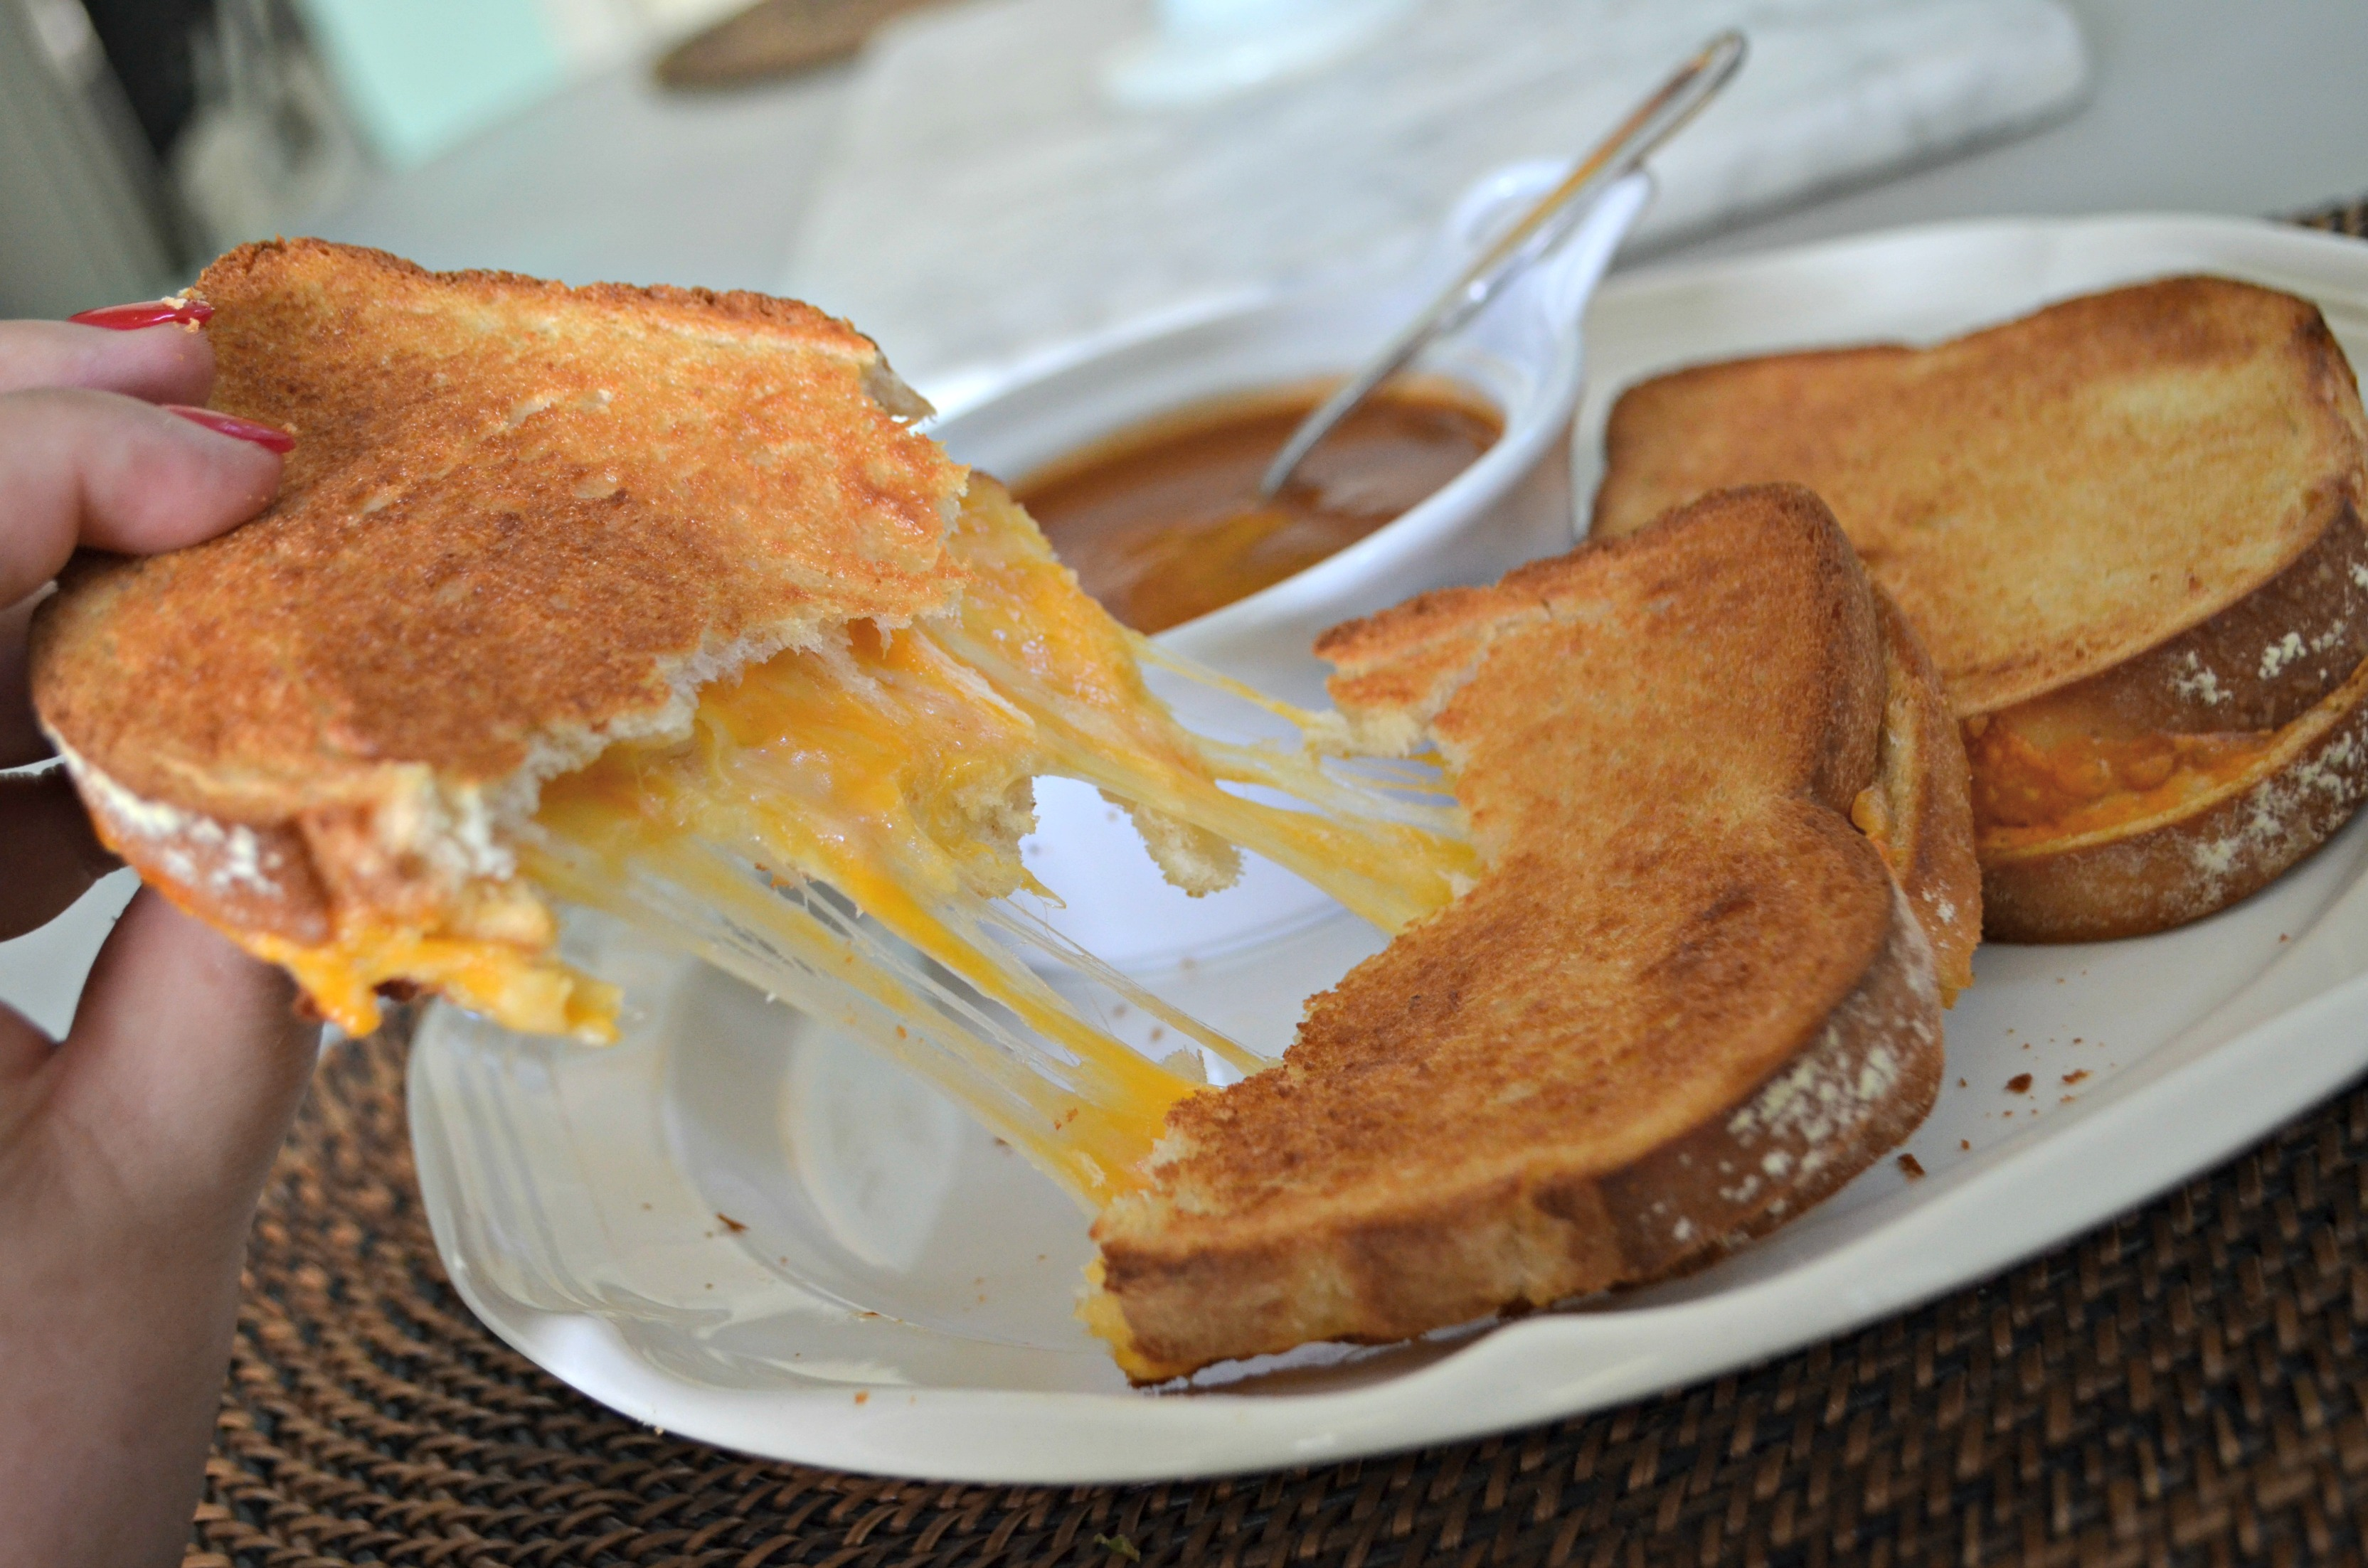 air fryer grilled cheese - pulled apart on a plate